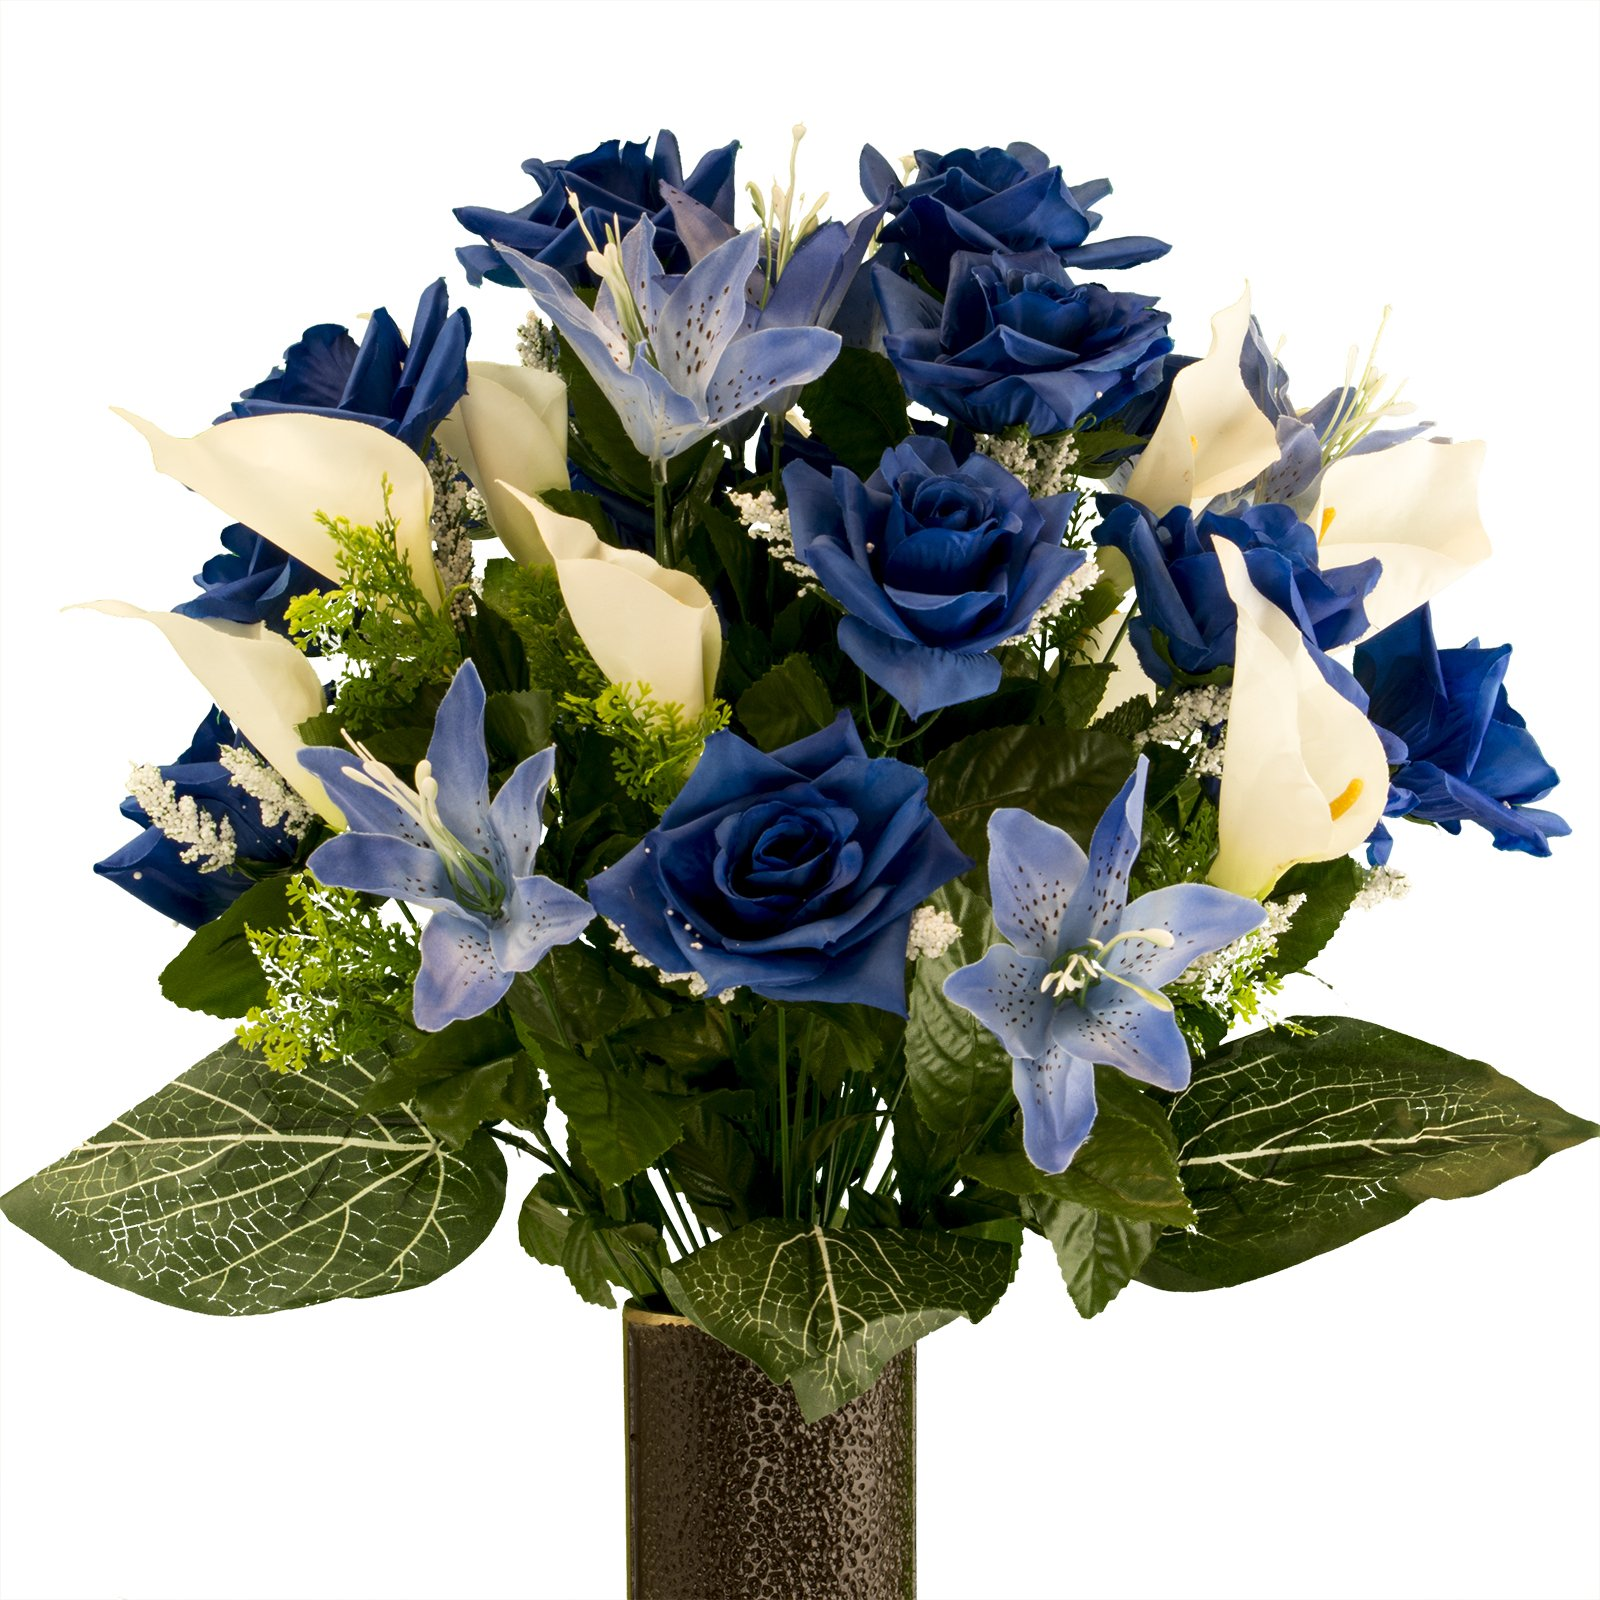 Blue-Rose-with-Blue-Tiger-Lily-Artificial-Bouquet-featuring-the-Stay-In-The-Vase-Designc-Flower-Holder-MD2072